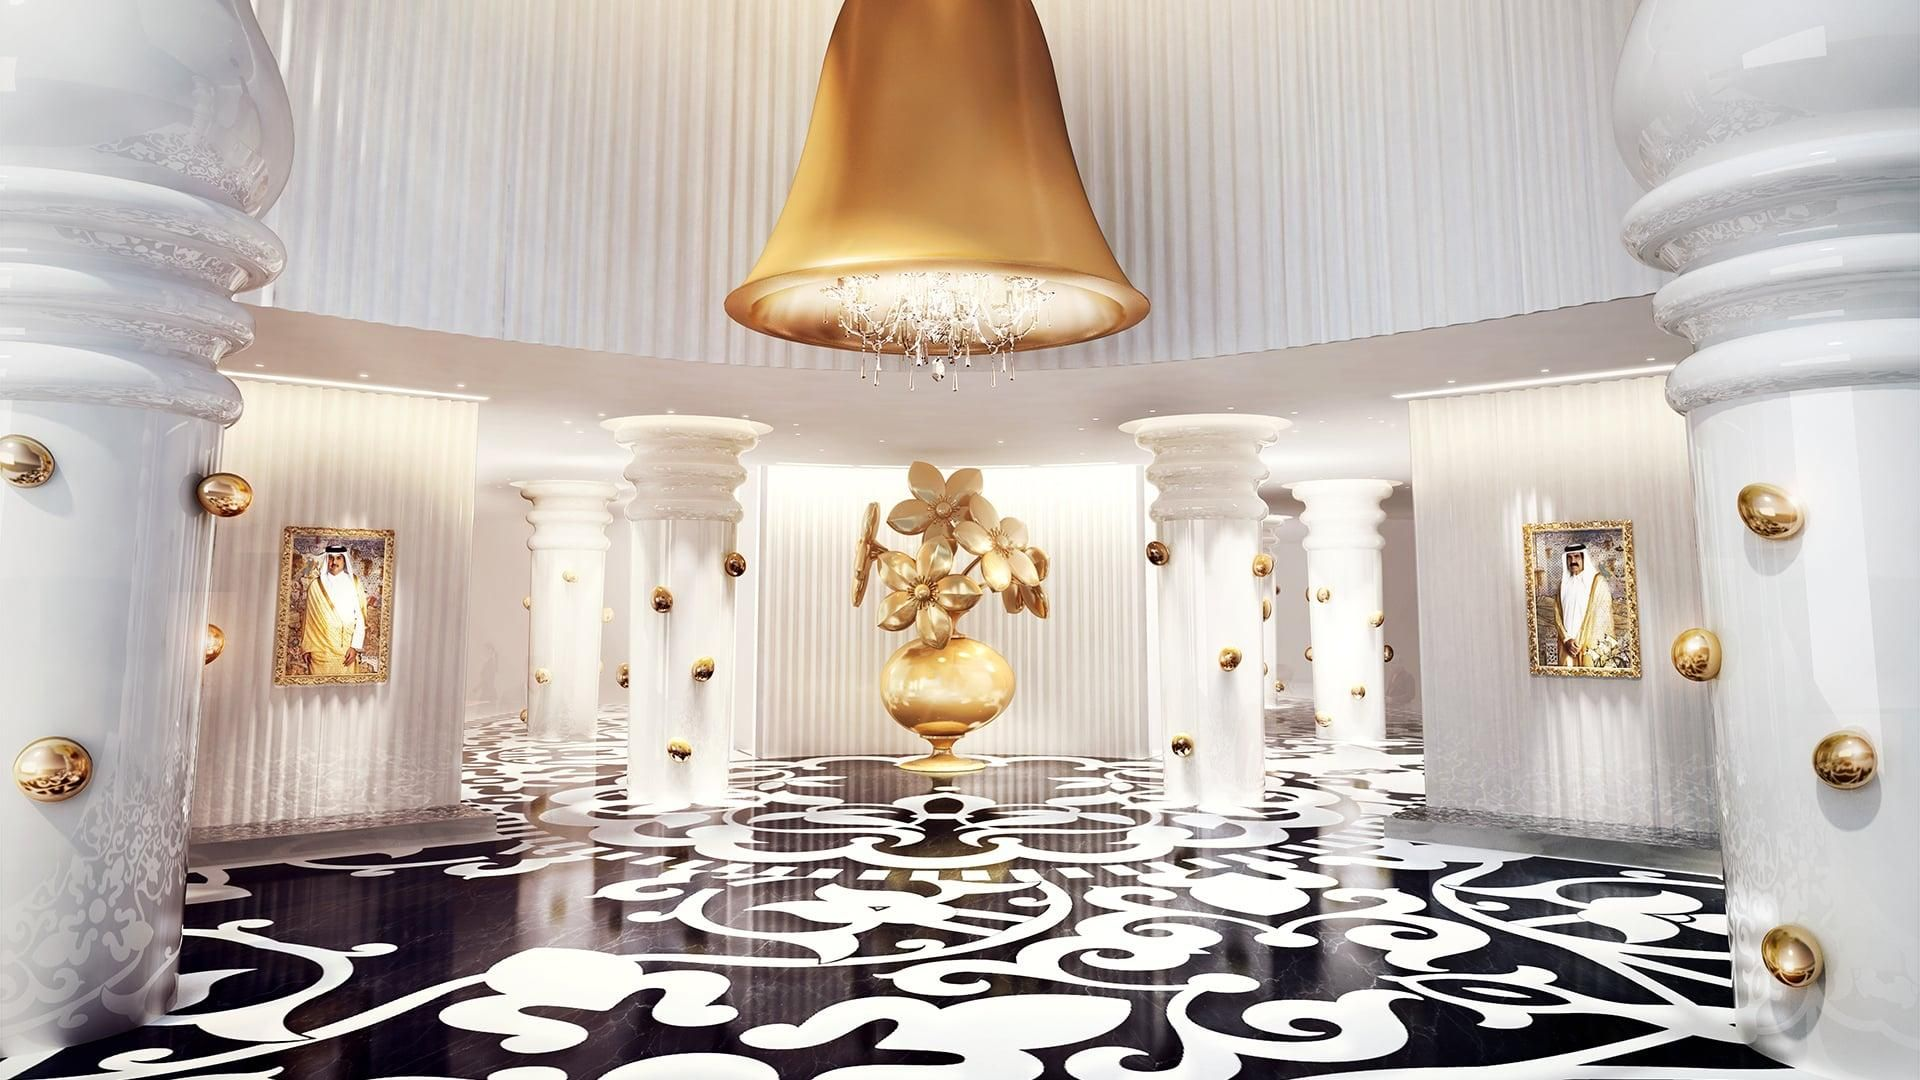 Marcel Wanders is a leading product and interior design studio ...